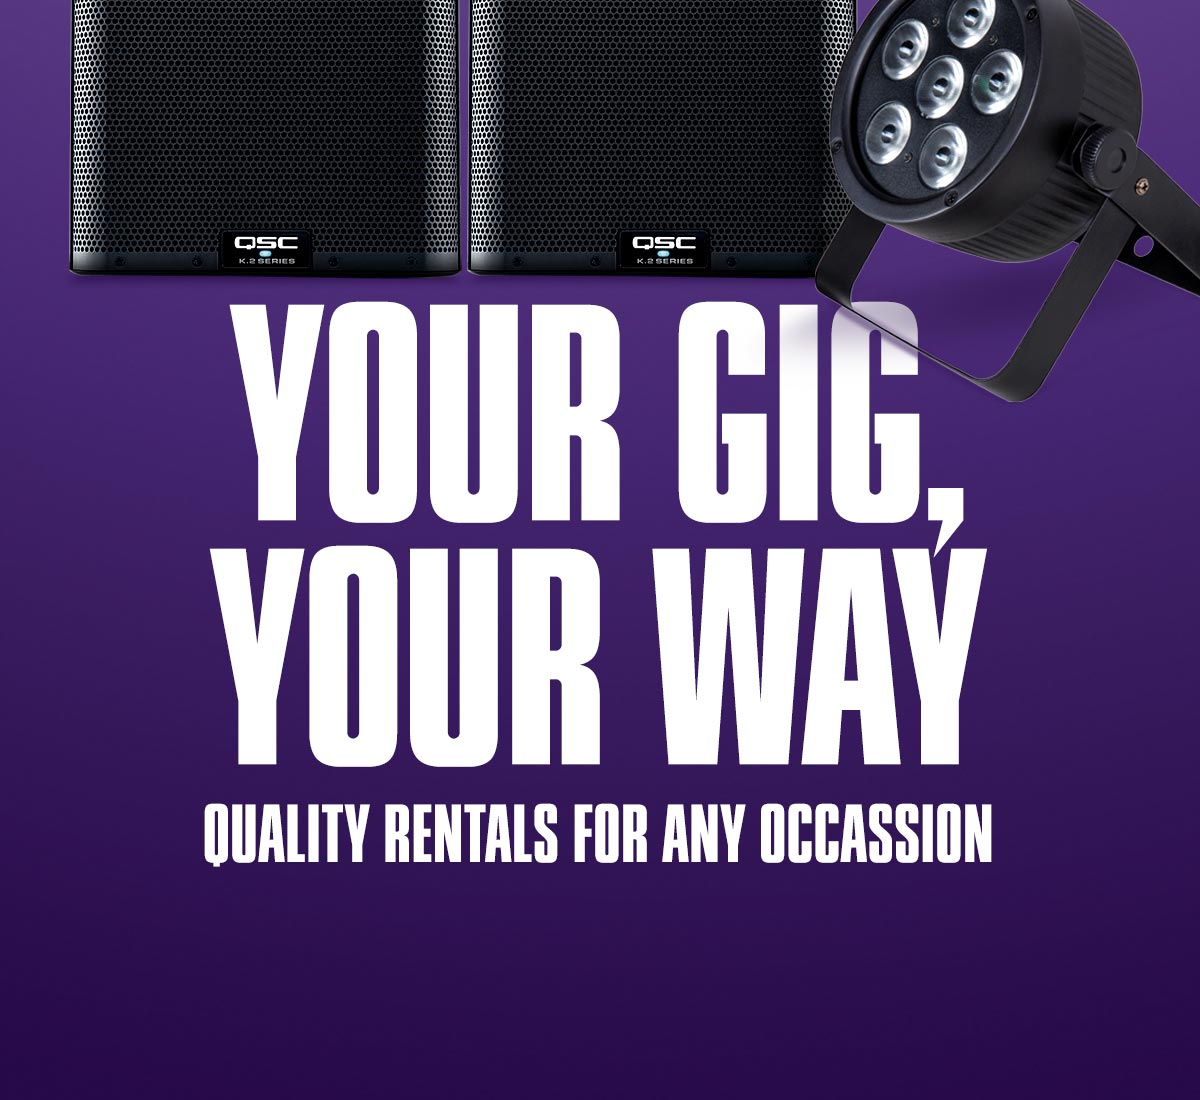 Your gig, your way. Quality rentals for any occasion.